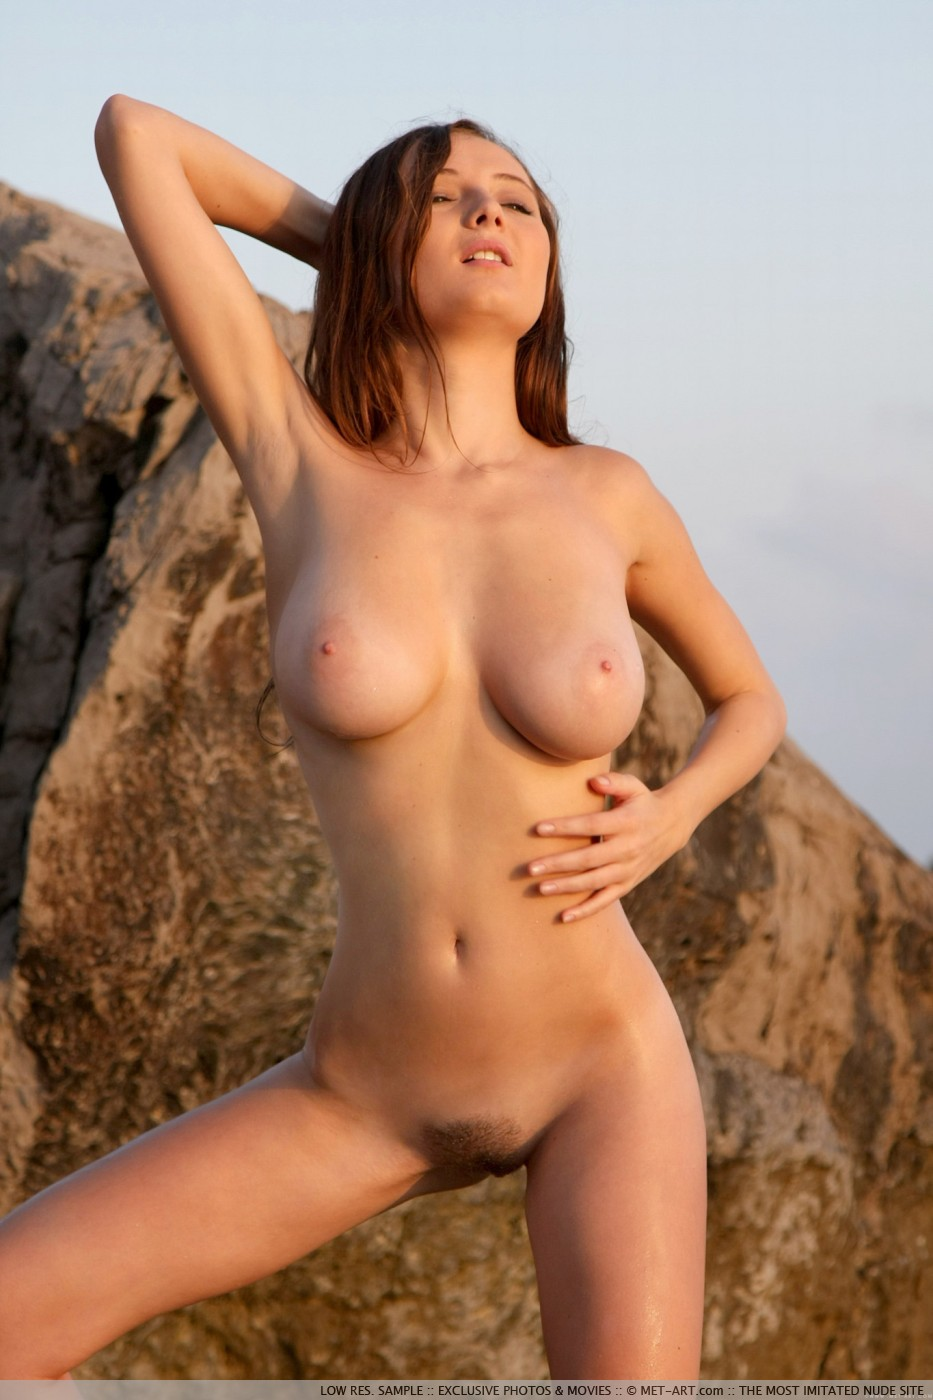 Hardcorr painfullsex nude beach boy girl